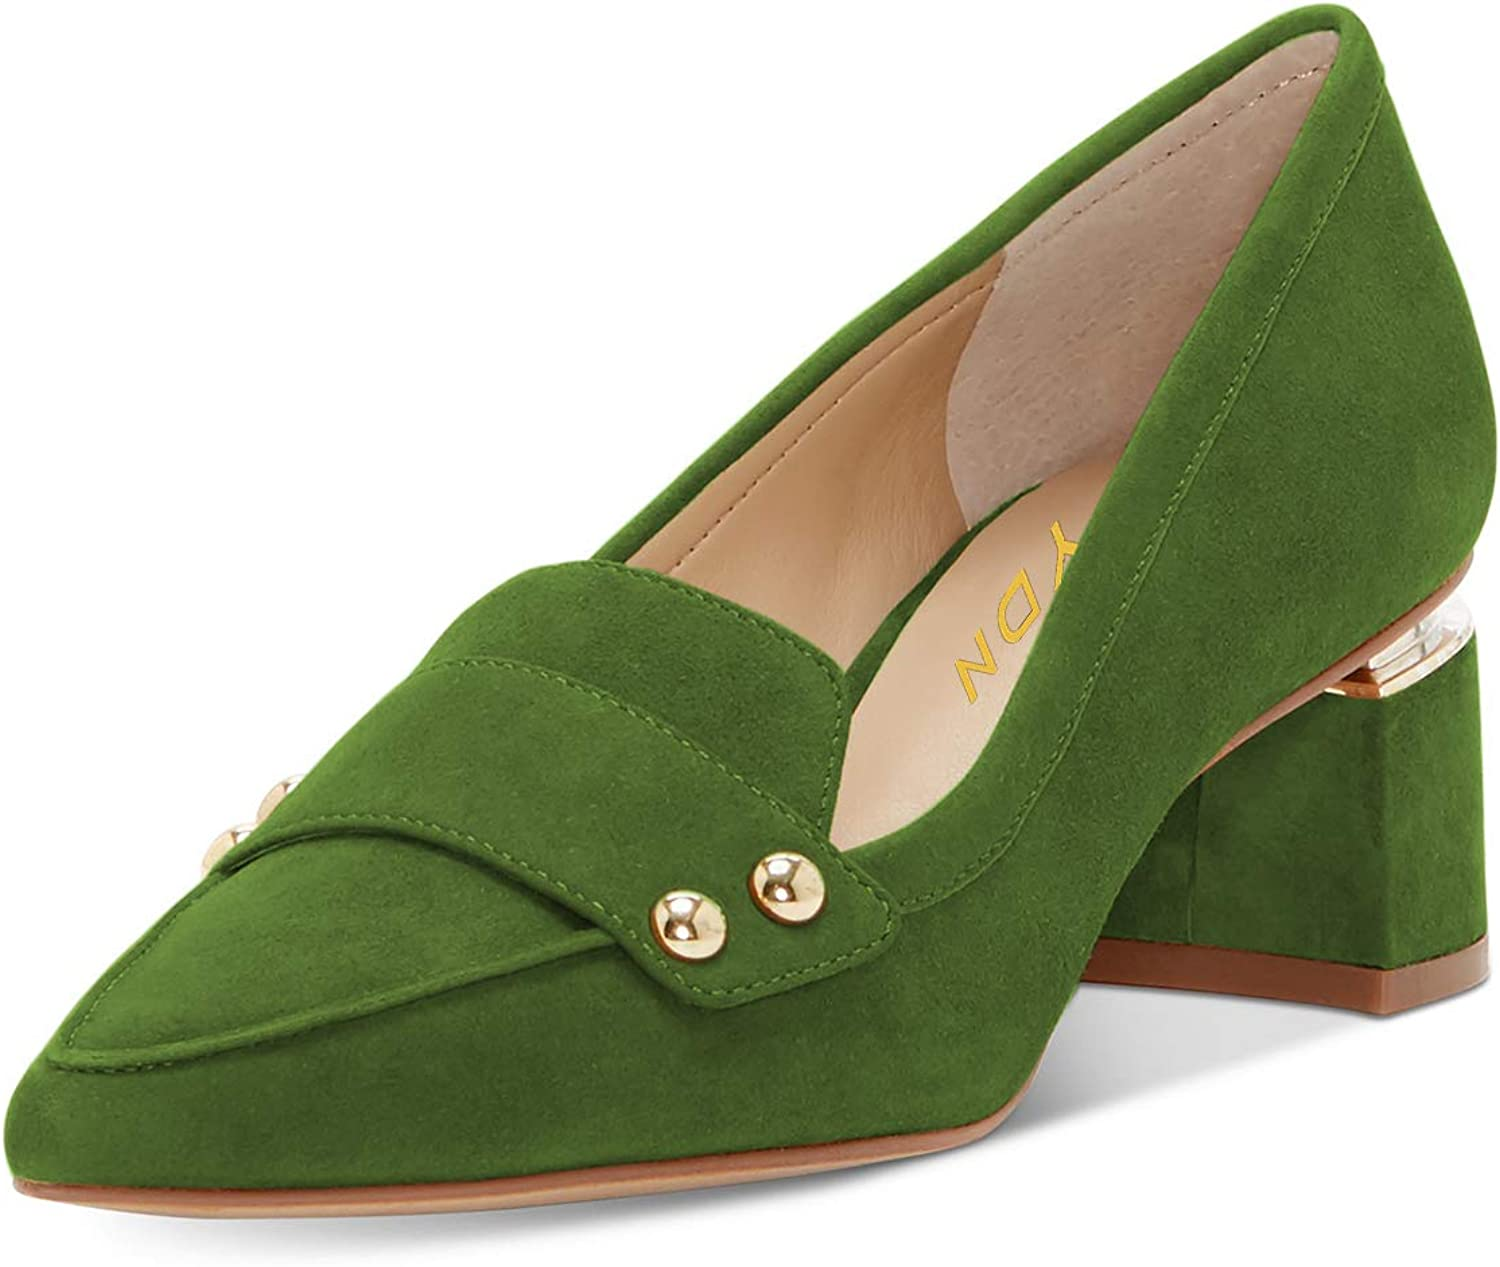 YDN Women Formal Pointed Toe Low Heel Loafers Slip On Faux Suede Leather Business Office Party Dress Pump shoes